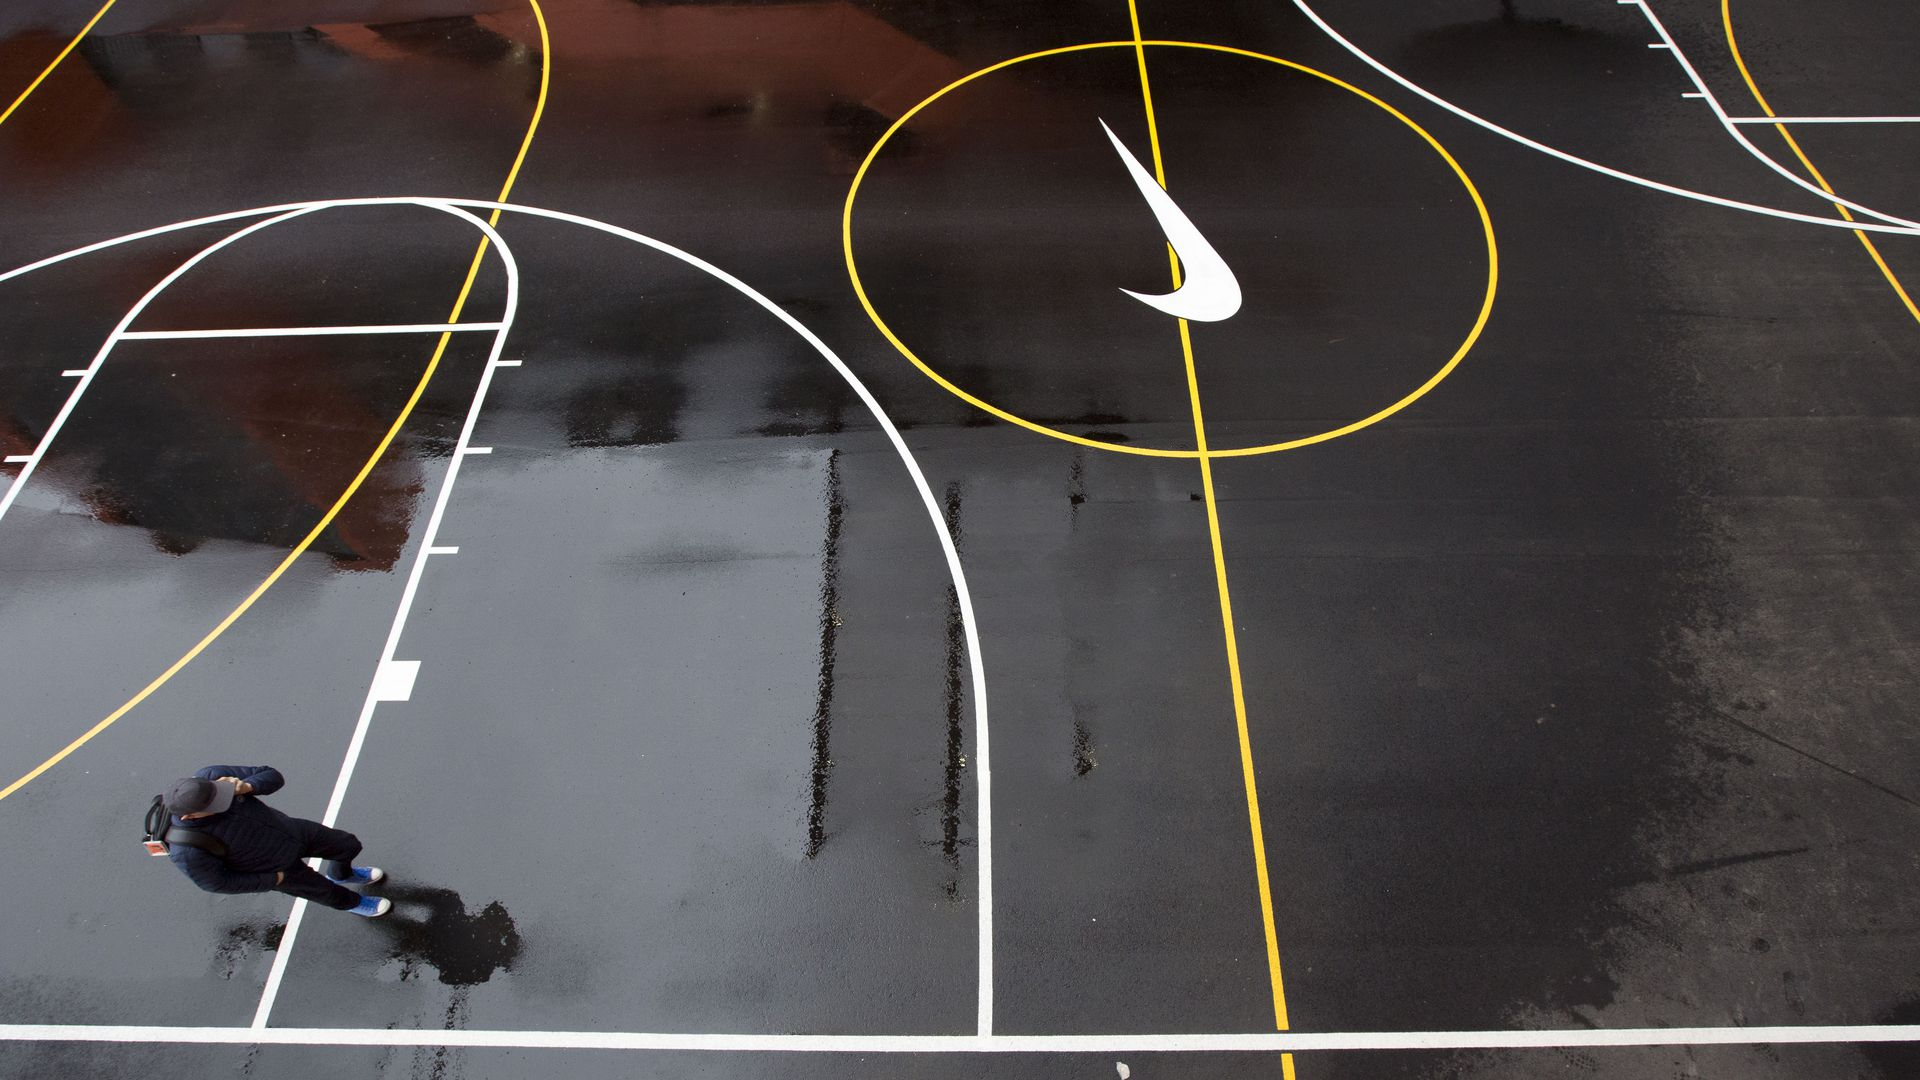 A man walks on a basketball court at Nike headquarters.